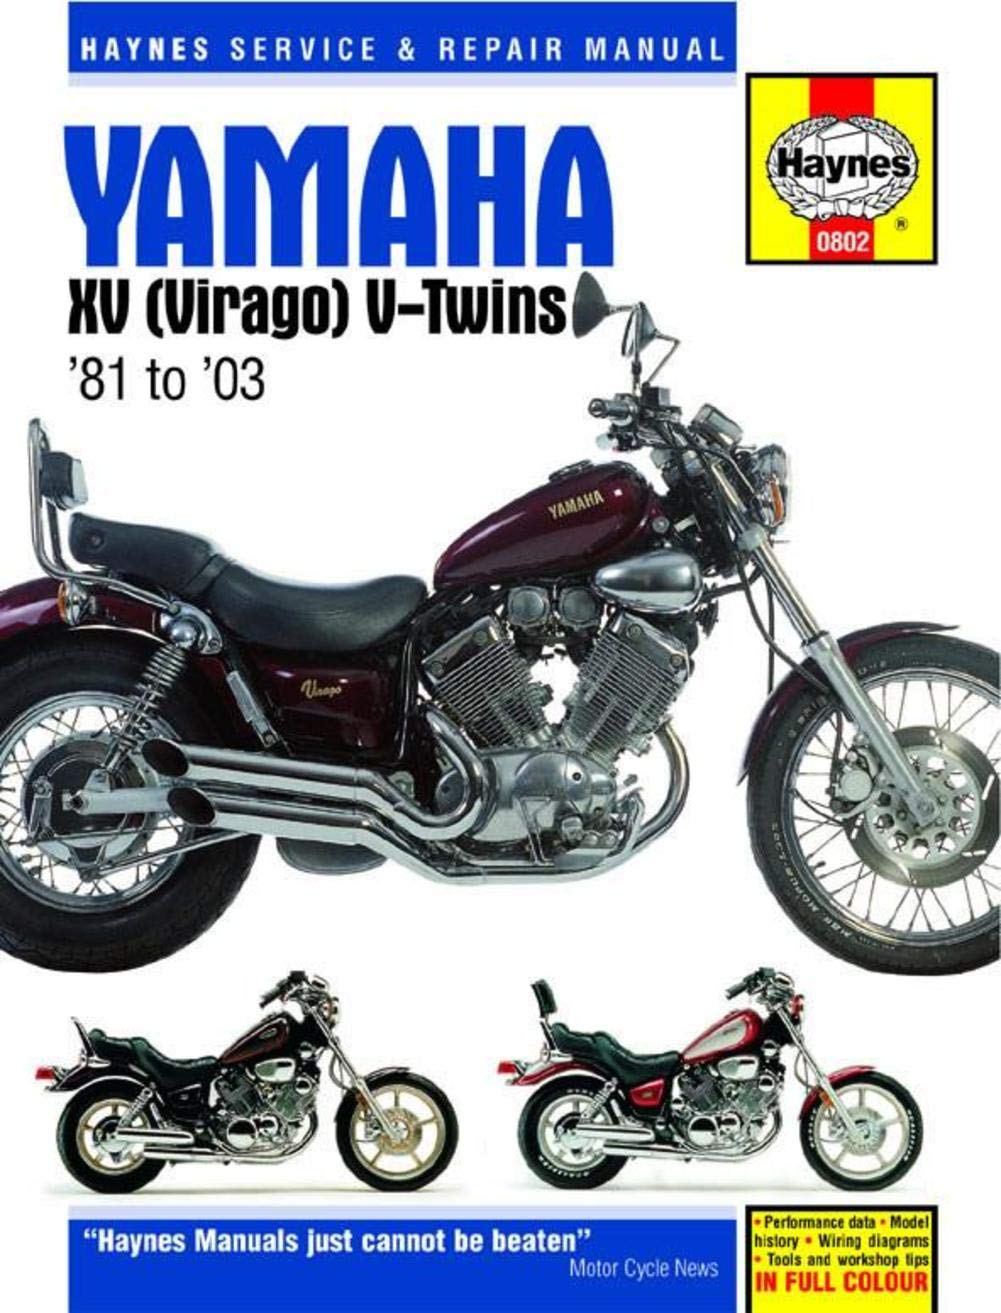 Haynes Repair Manuals 802 Yamaha Xv Virago V Twin 81 03 83 Wiring Diagram Automotive